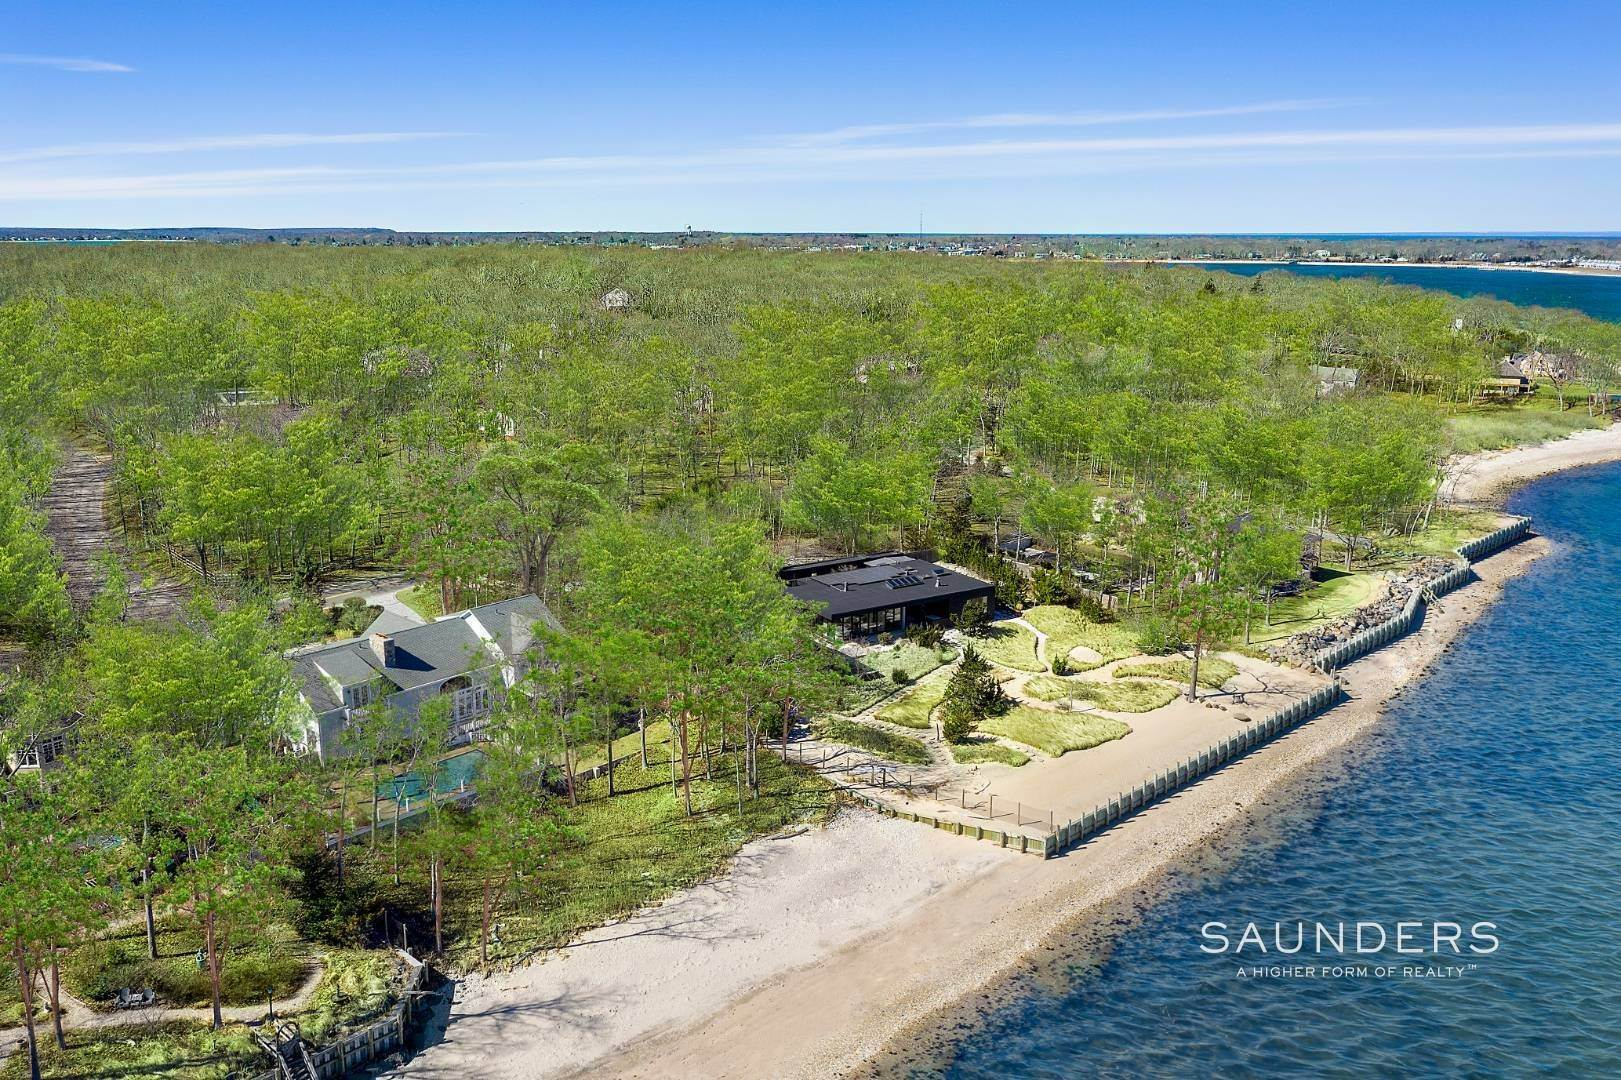 Single Family Homes for Sale at Shelter Island Gardiners Bay Beach House With Pool 72 Gardiners Bay Drive, Shelter Island Heights, Shelter Island, NY 11964